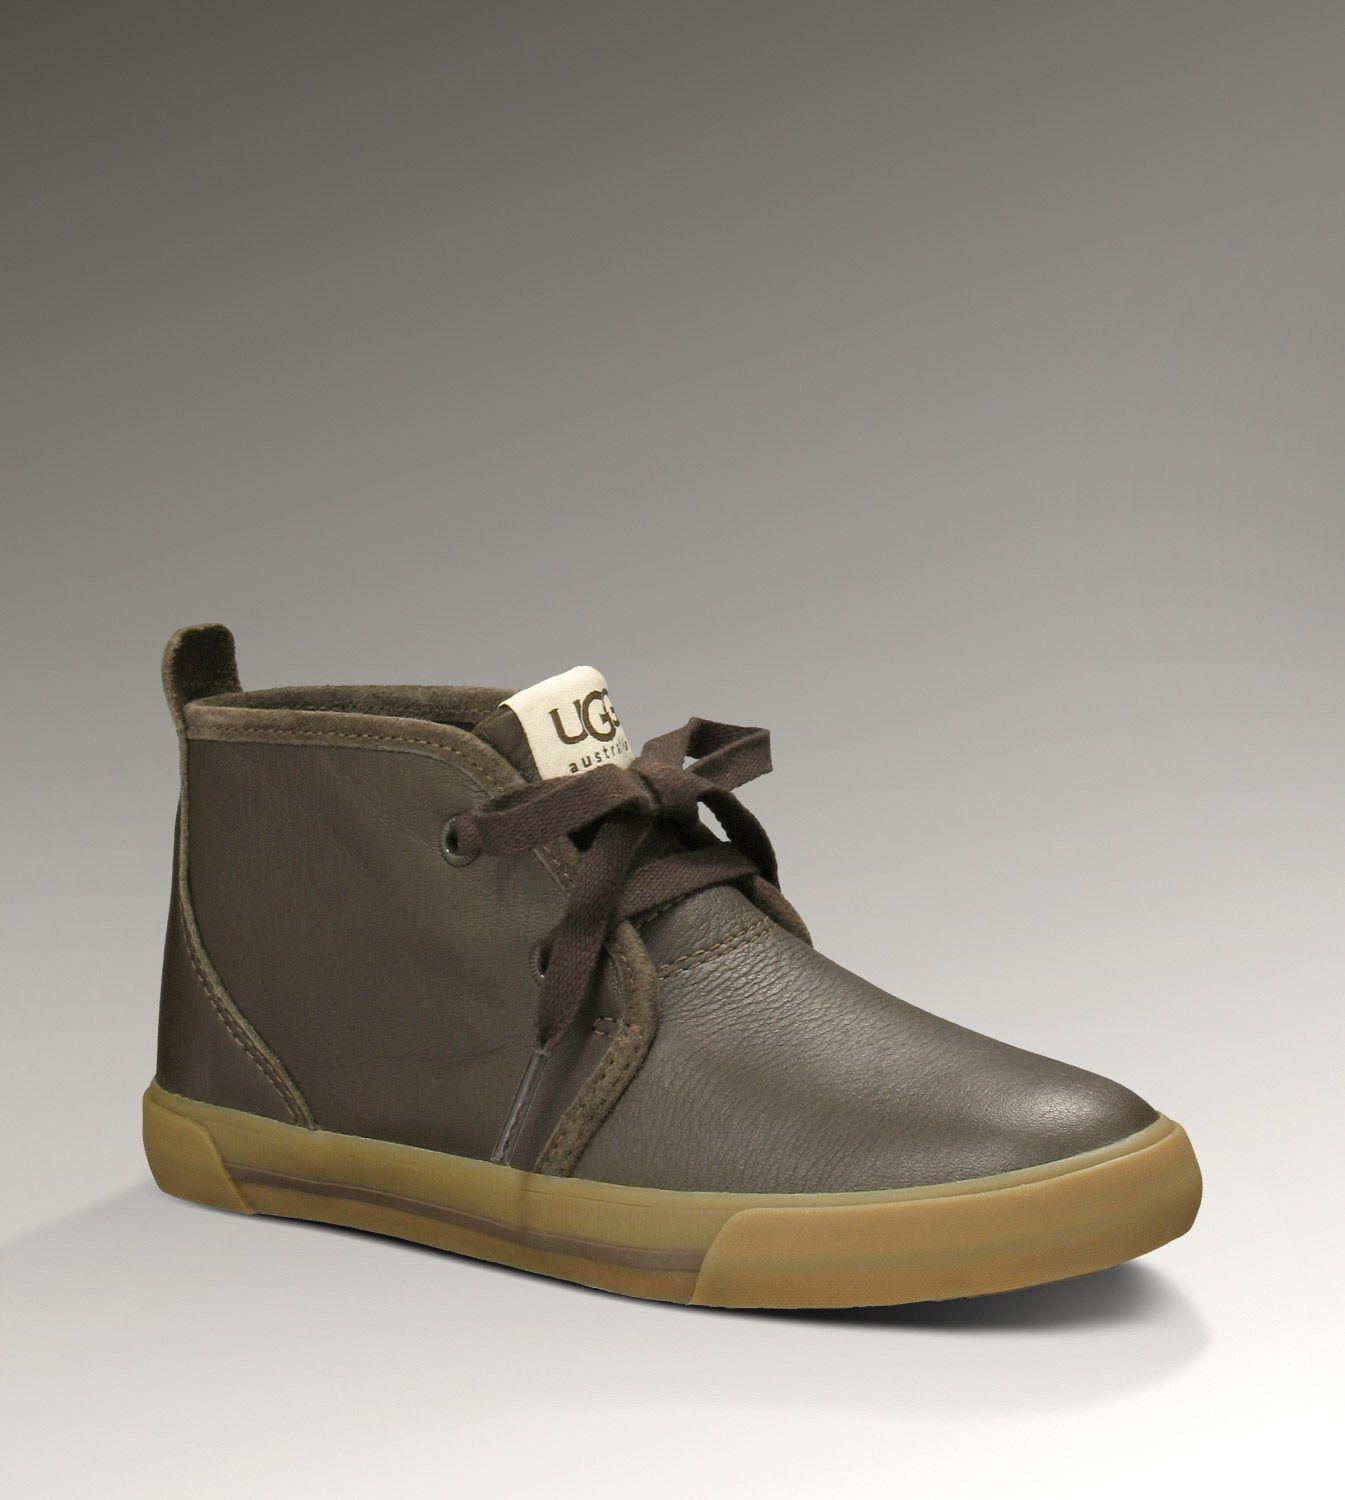 Infant/toddler boy (UGG® Brockman for Toddlers | Durable Leather Sneakers at UGGAustralia.com)